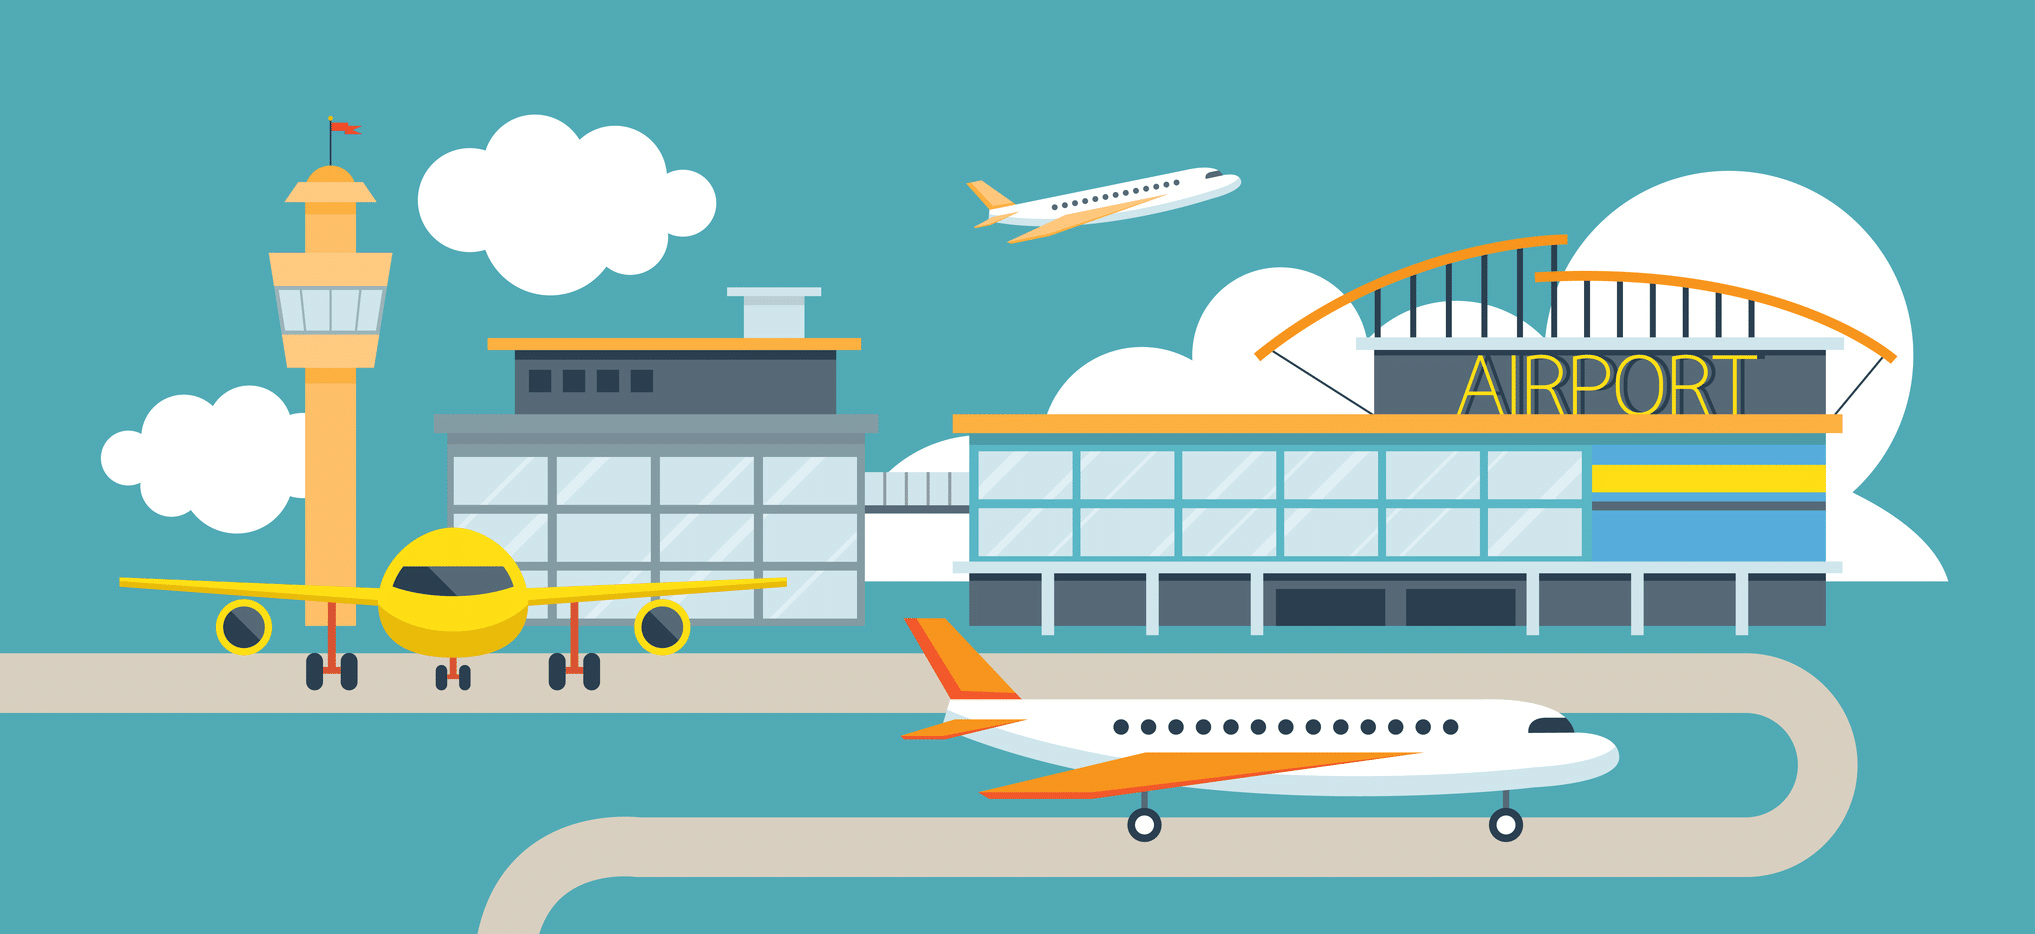 Airport Scene With Planes, Terminal and Control Tower